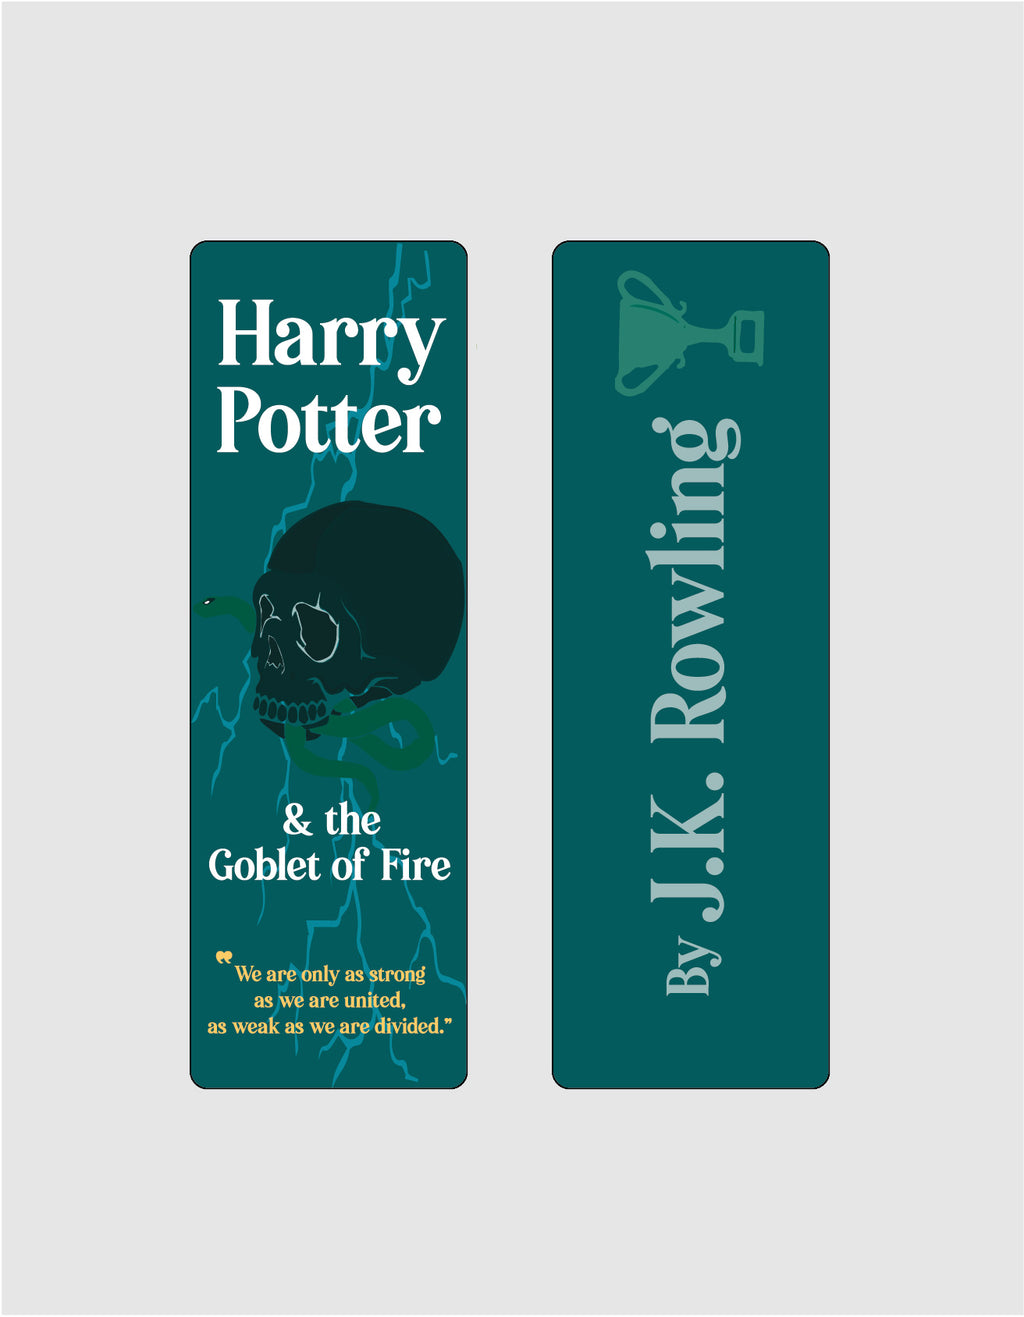 Harry Potter and the Goblet of Fire by J.K. Rowling Bookmark